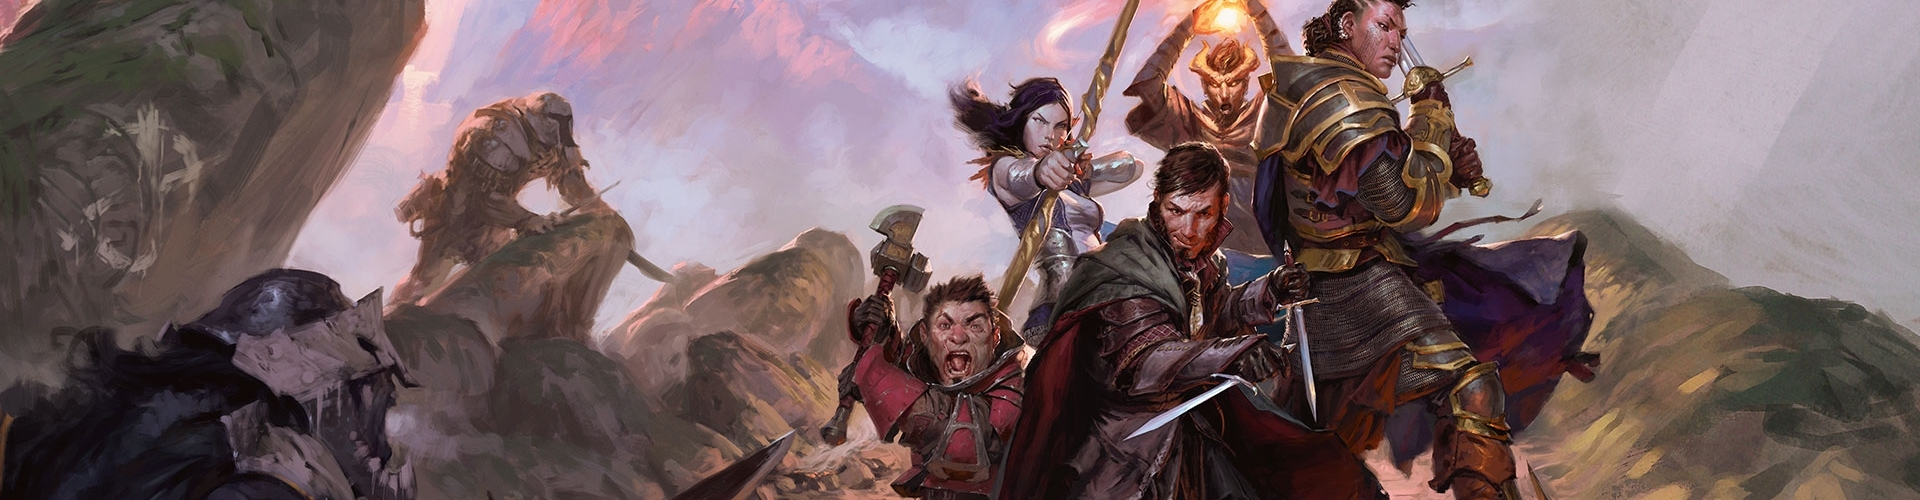 High Rollers on Streaming D&D